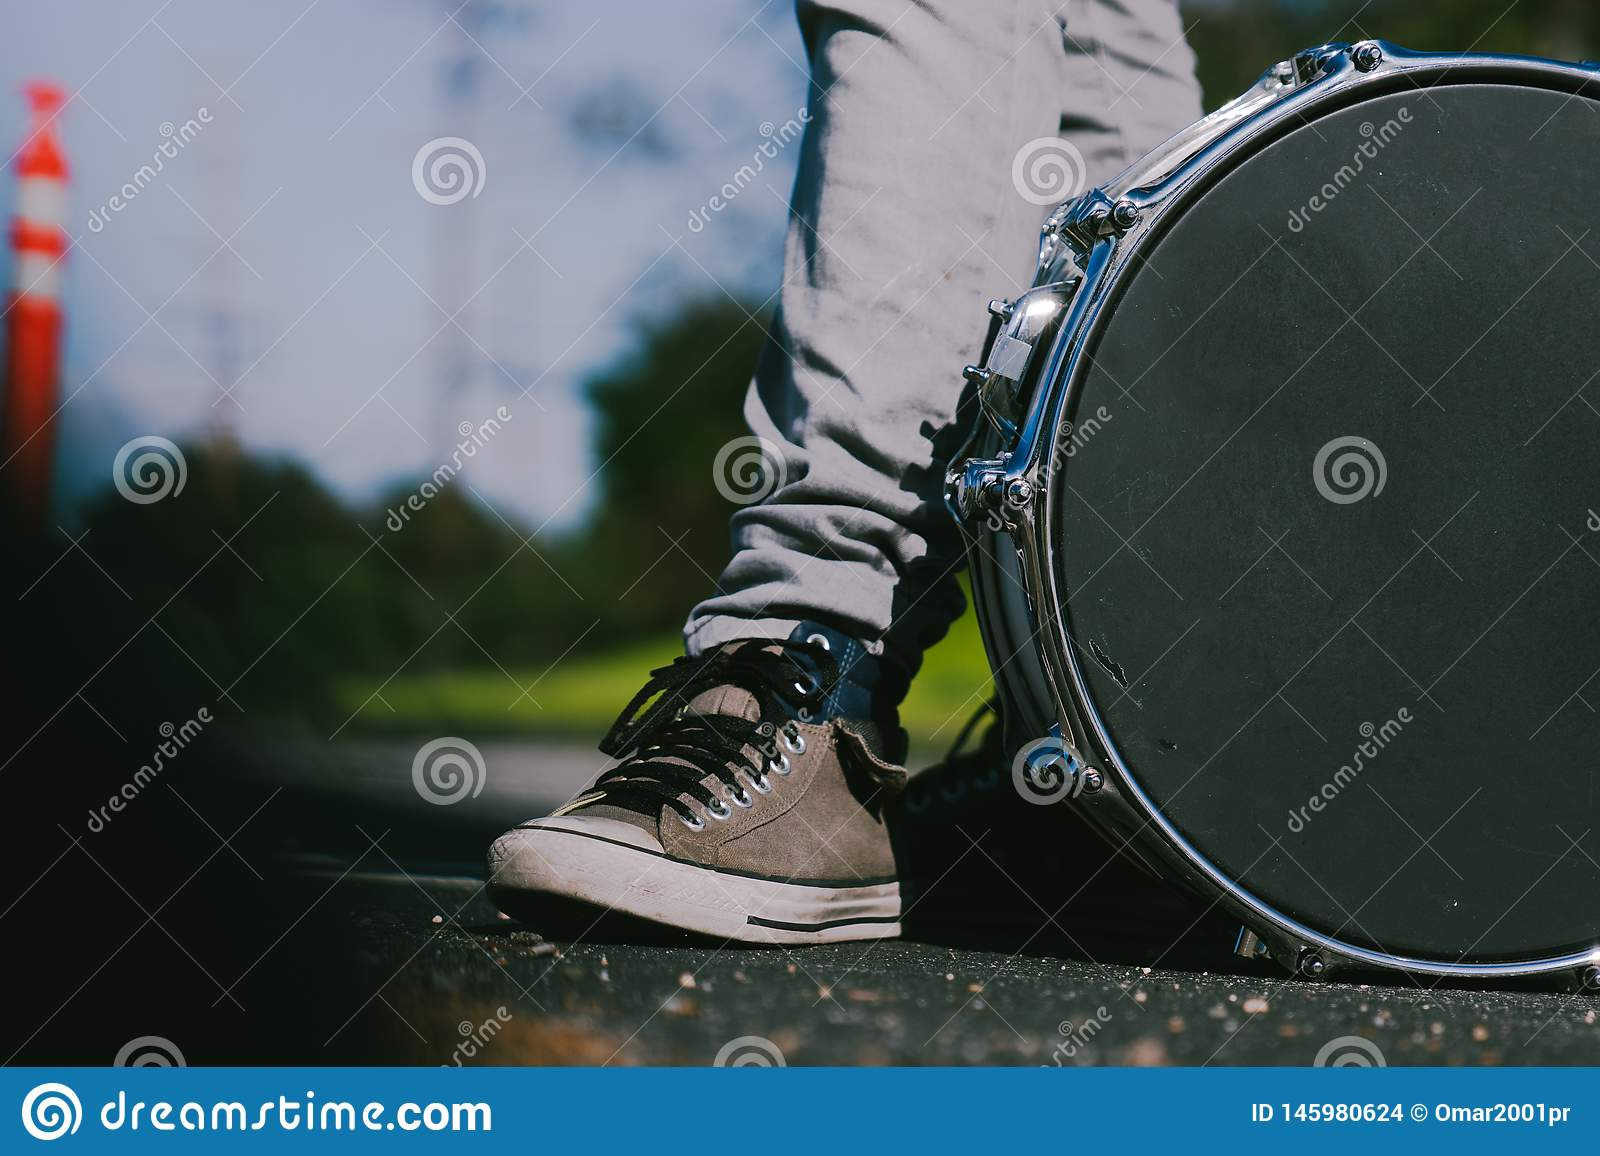 Snare On The Road